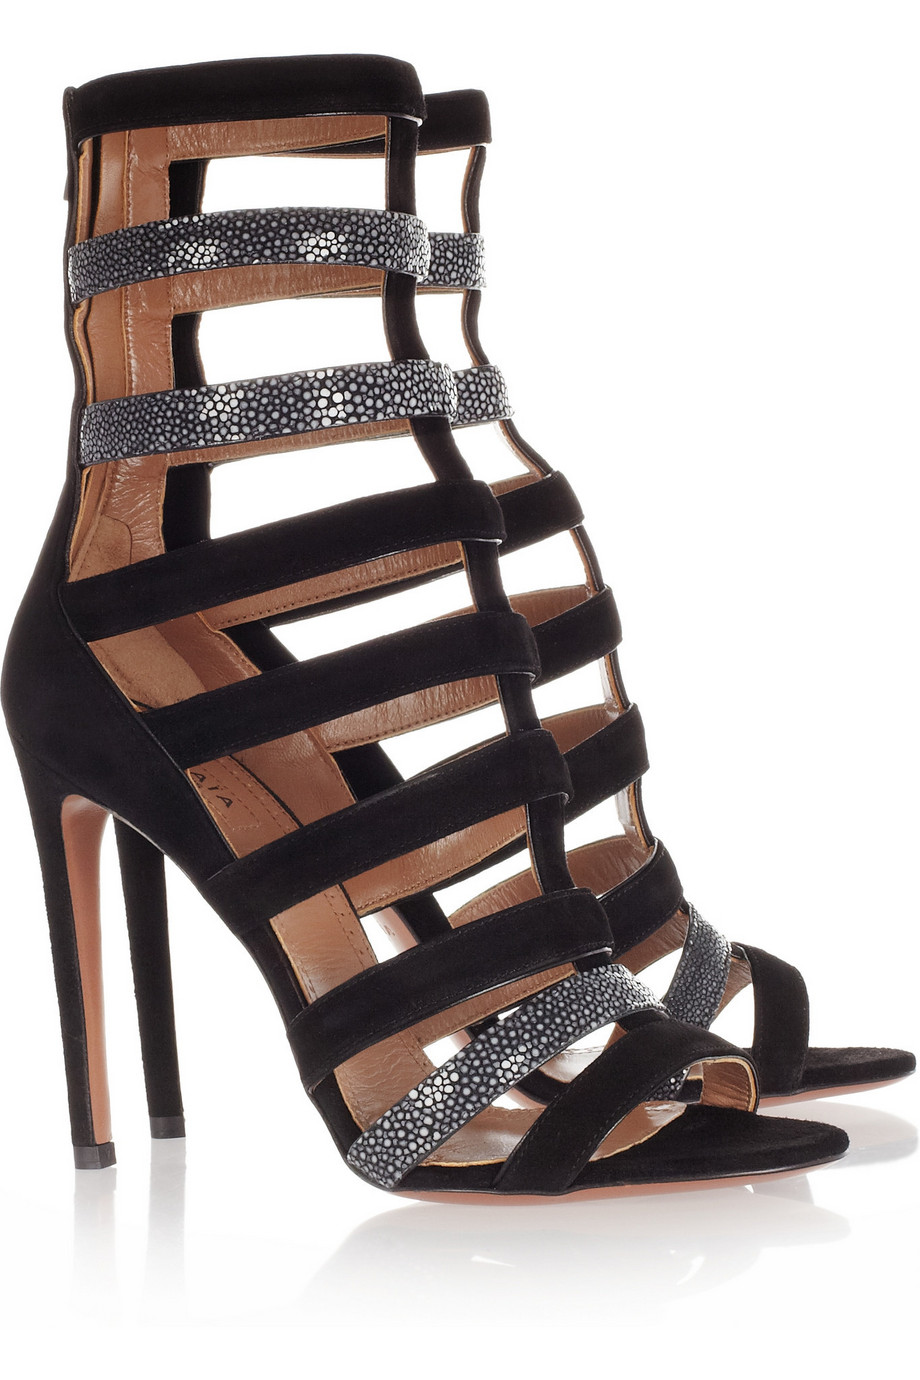 Alaia Shoes Online Alaa Click to zoom